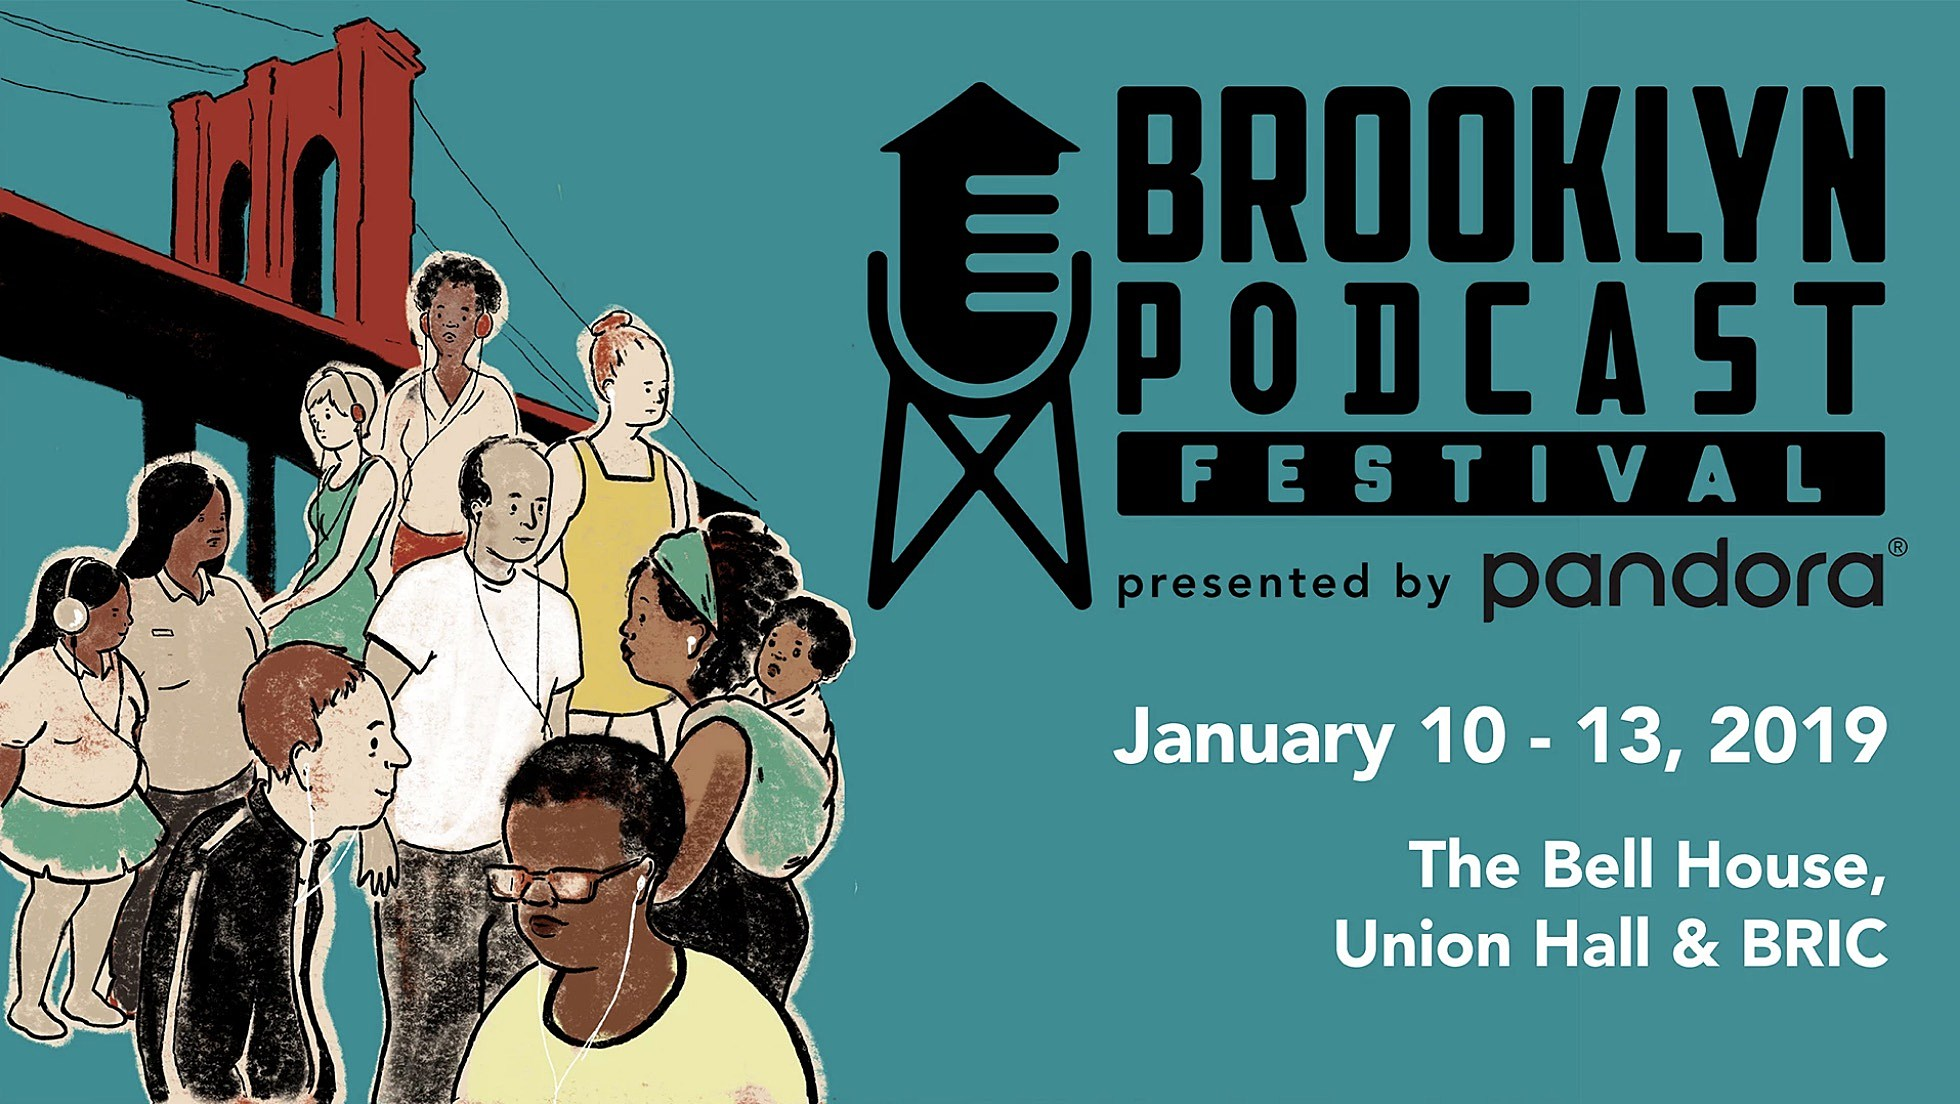 brooklyn-podcast-festival